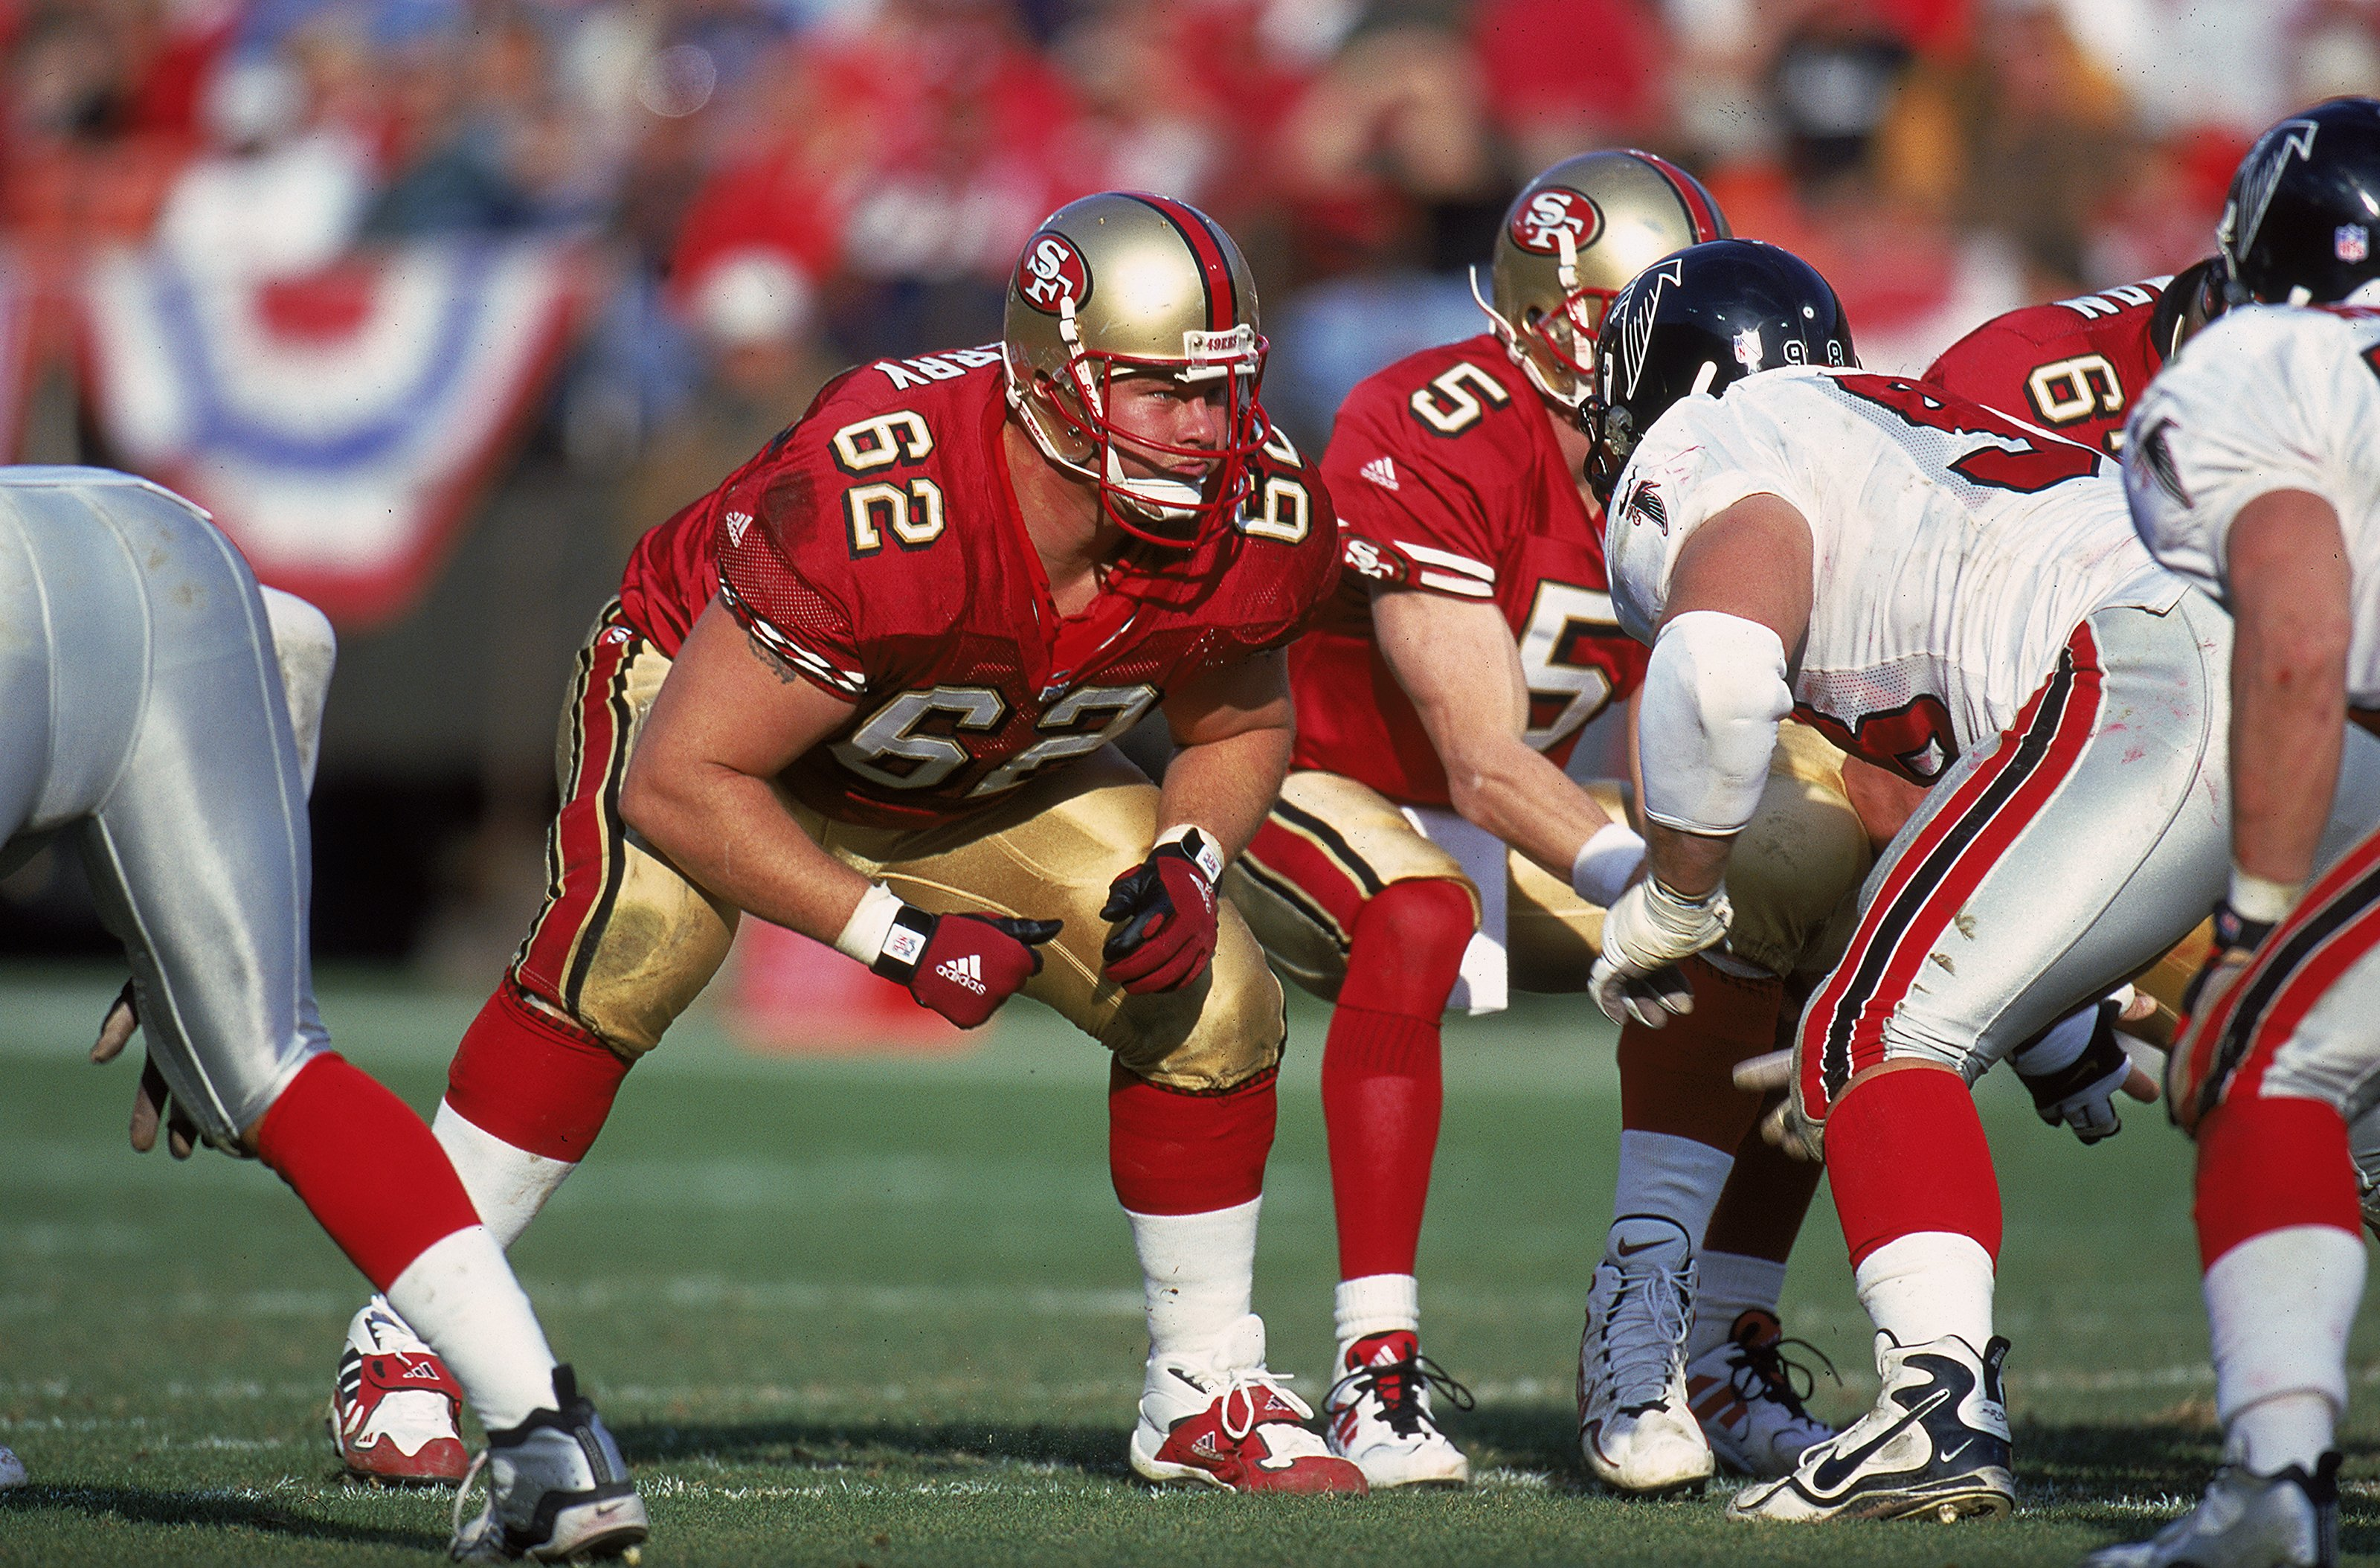 Nfl Football Players In Action: Former NFL Players May Appeal After Painkillers Lawsuit